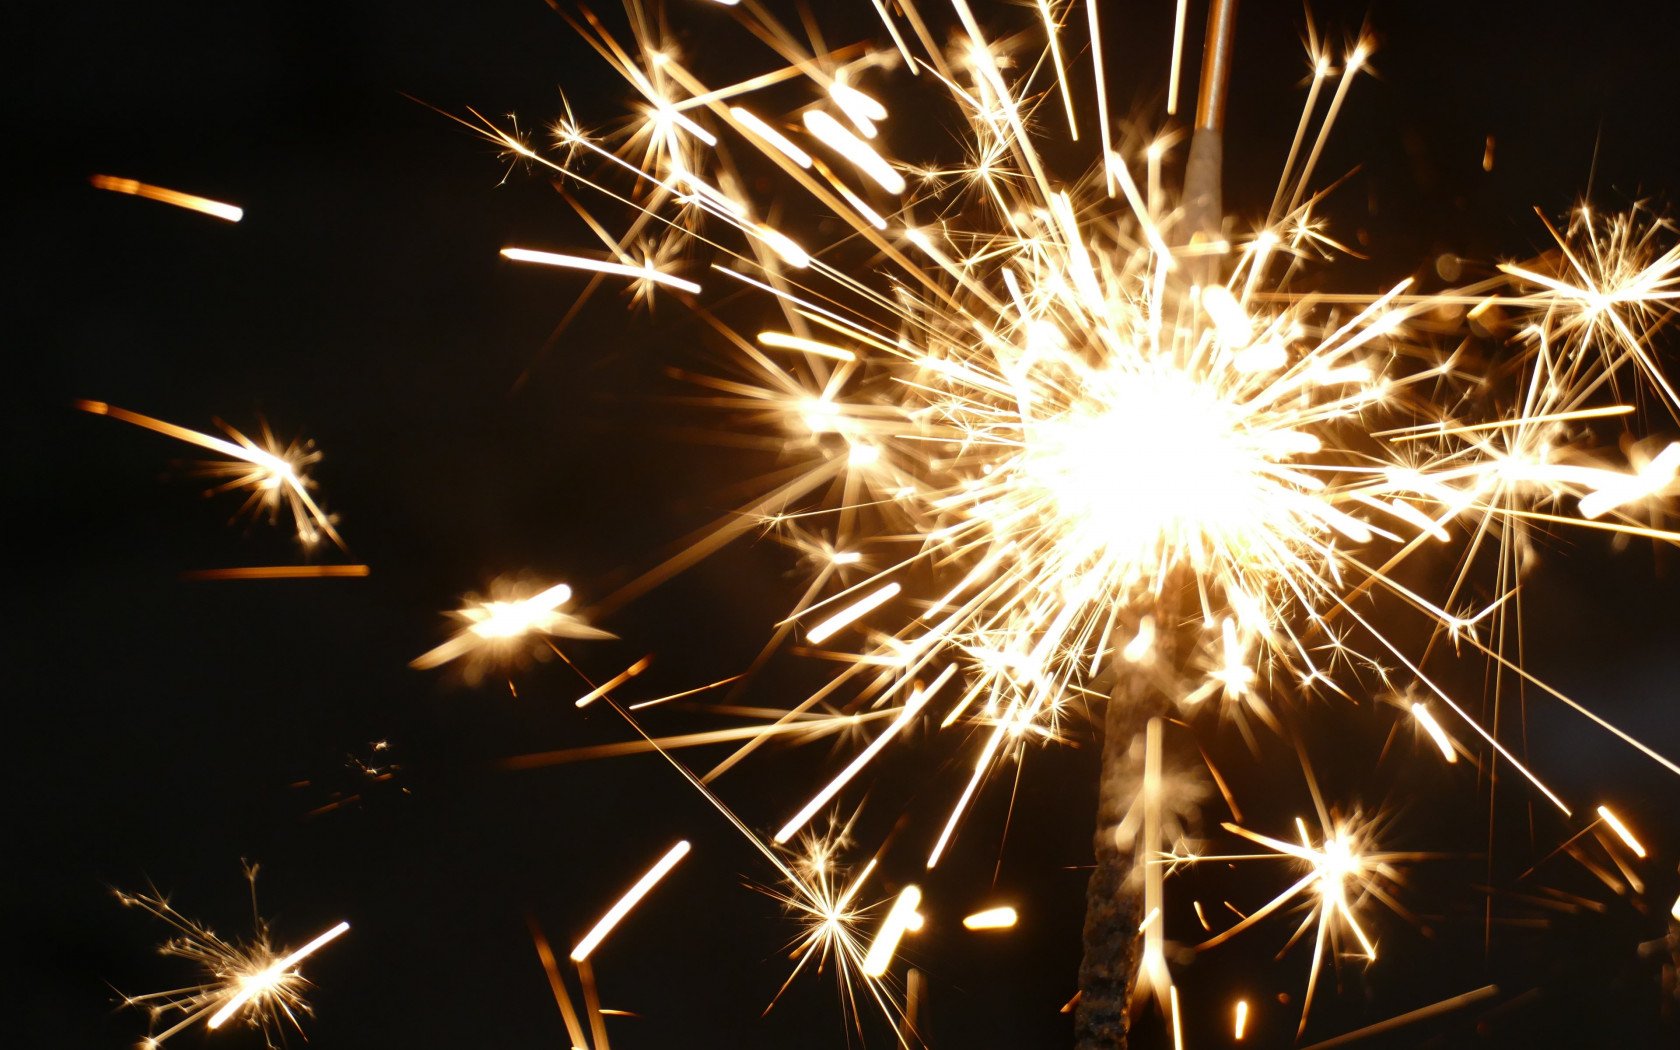 Download wallpaper: Sparklers for new year 1680x1050